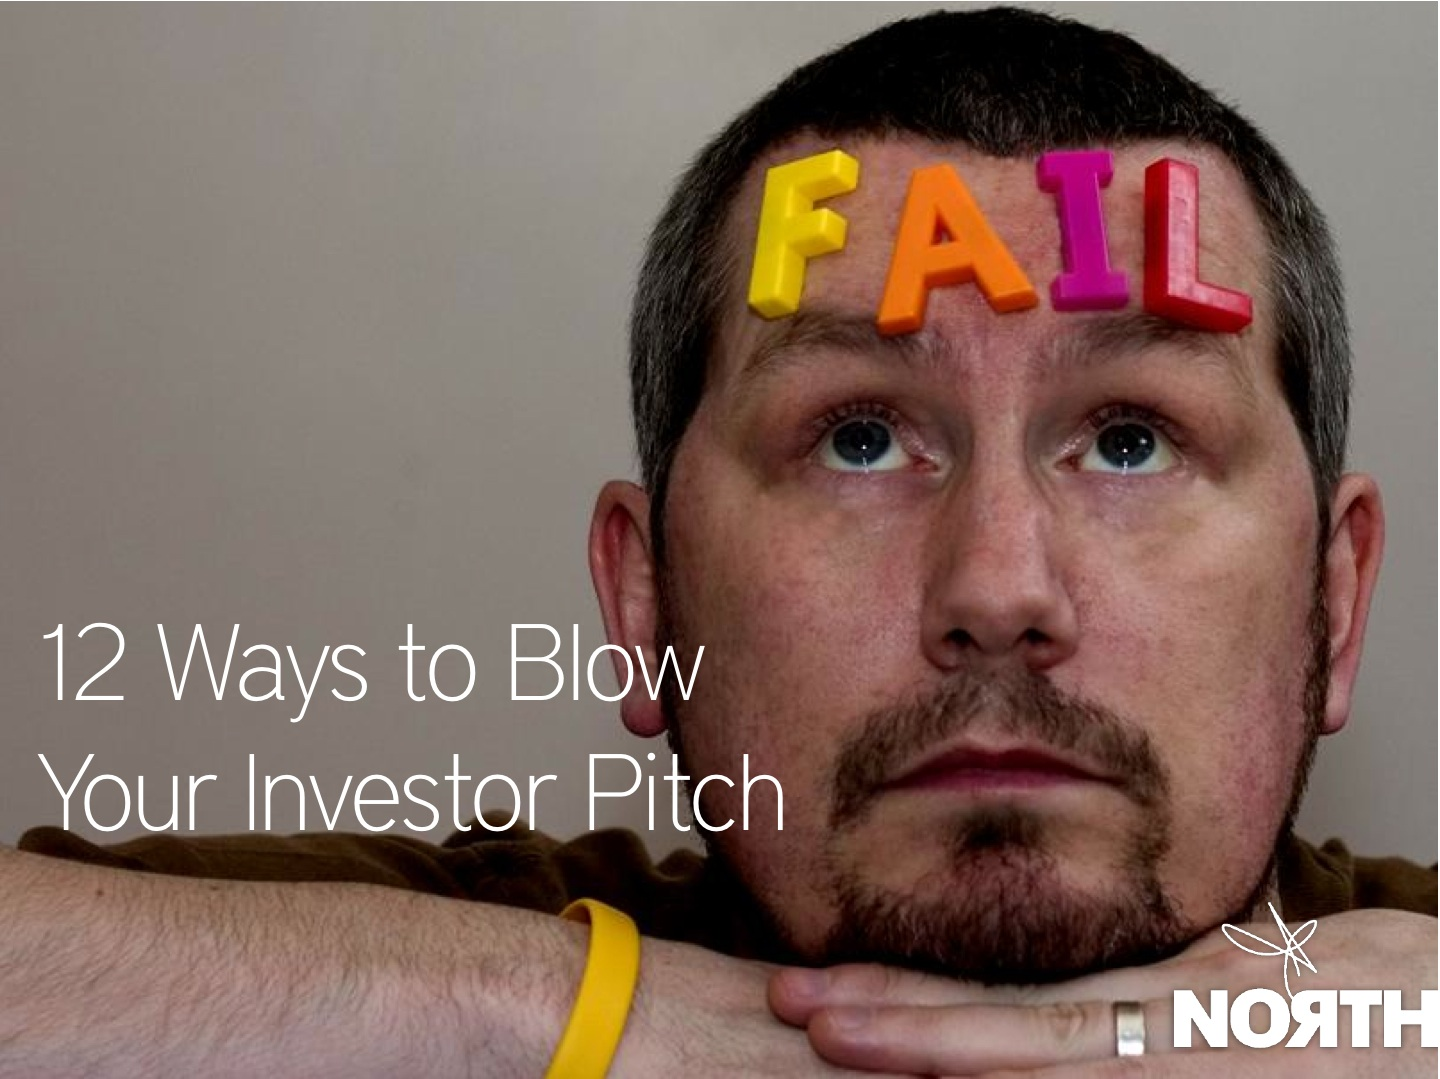 12 Ways To Blow Your Investor Pitch